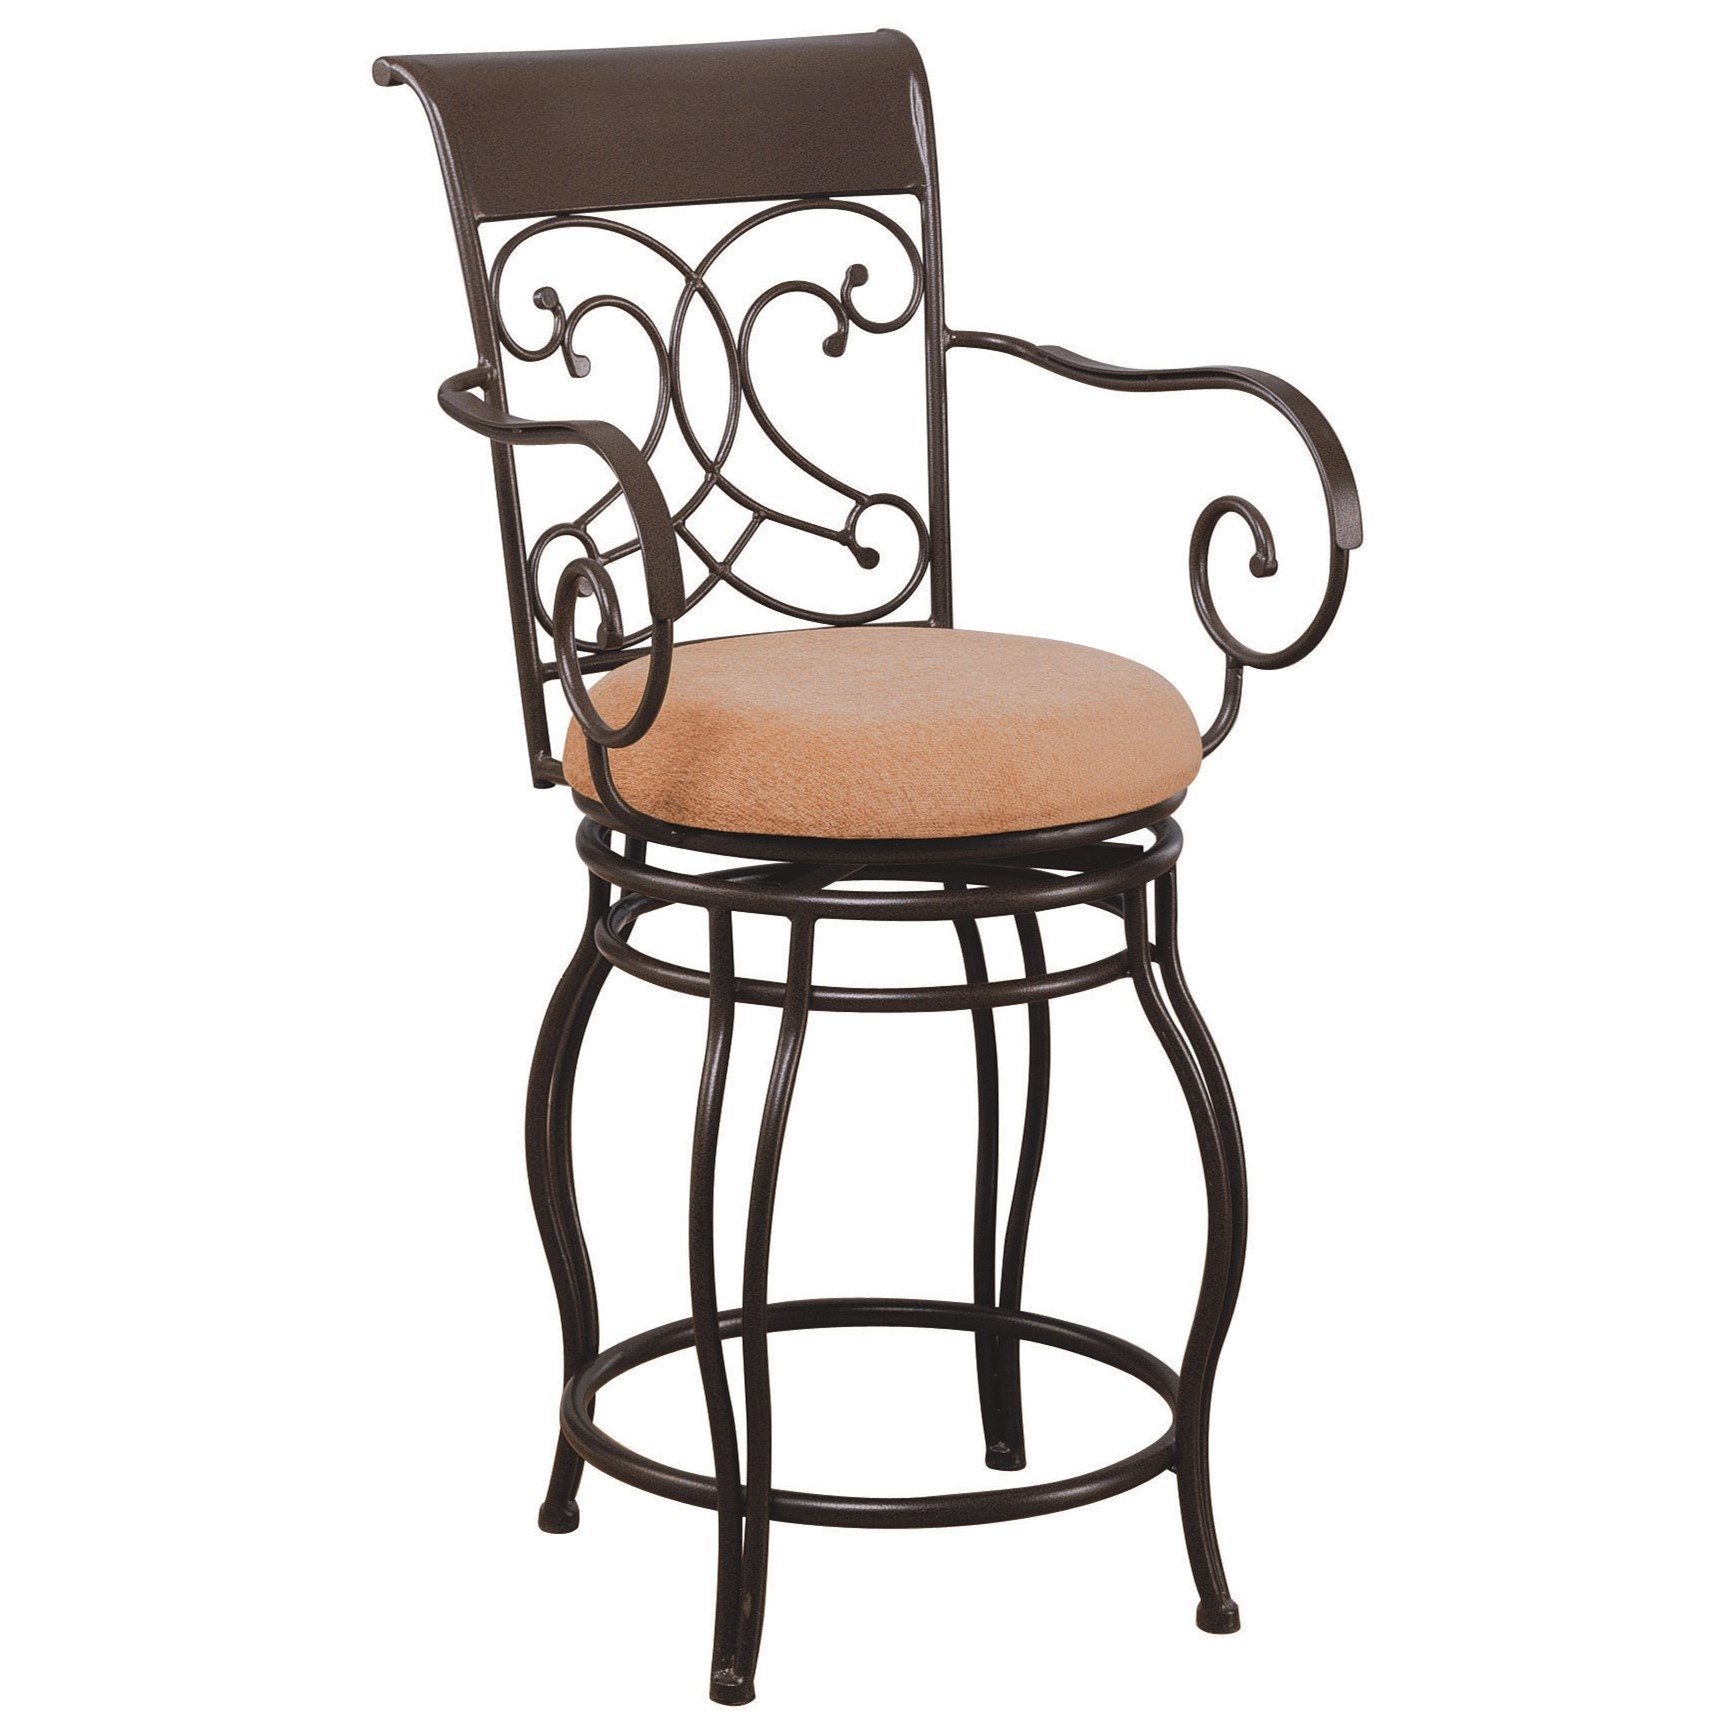 "Coaster Dining Chairs and Bar Stools 24"" Metal Bar Stool - Item Number: 120020"